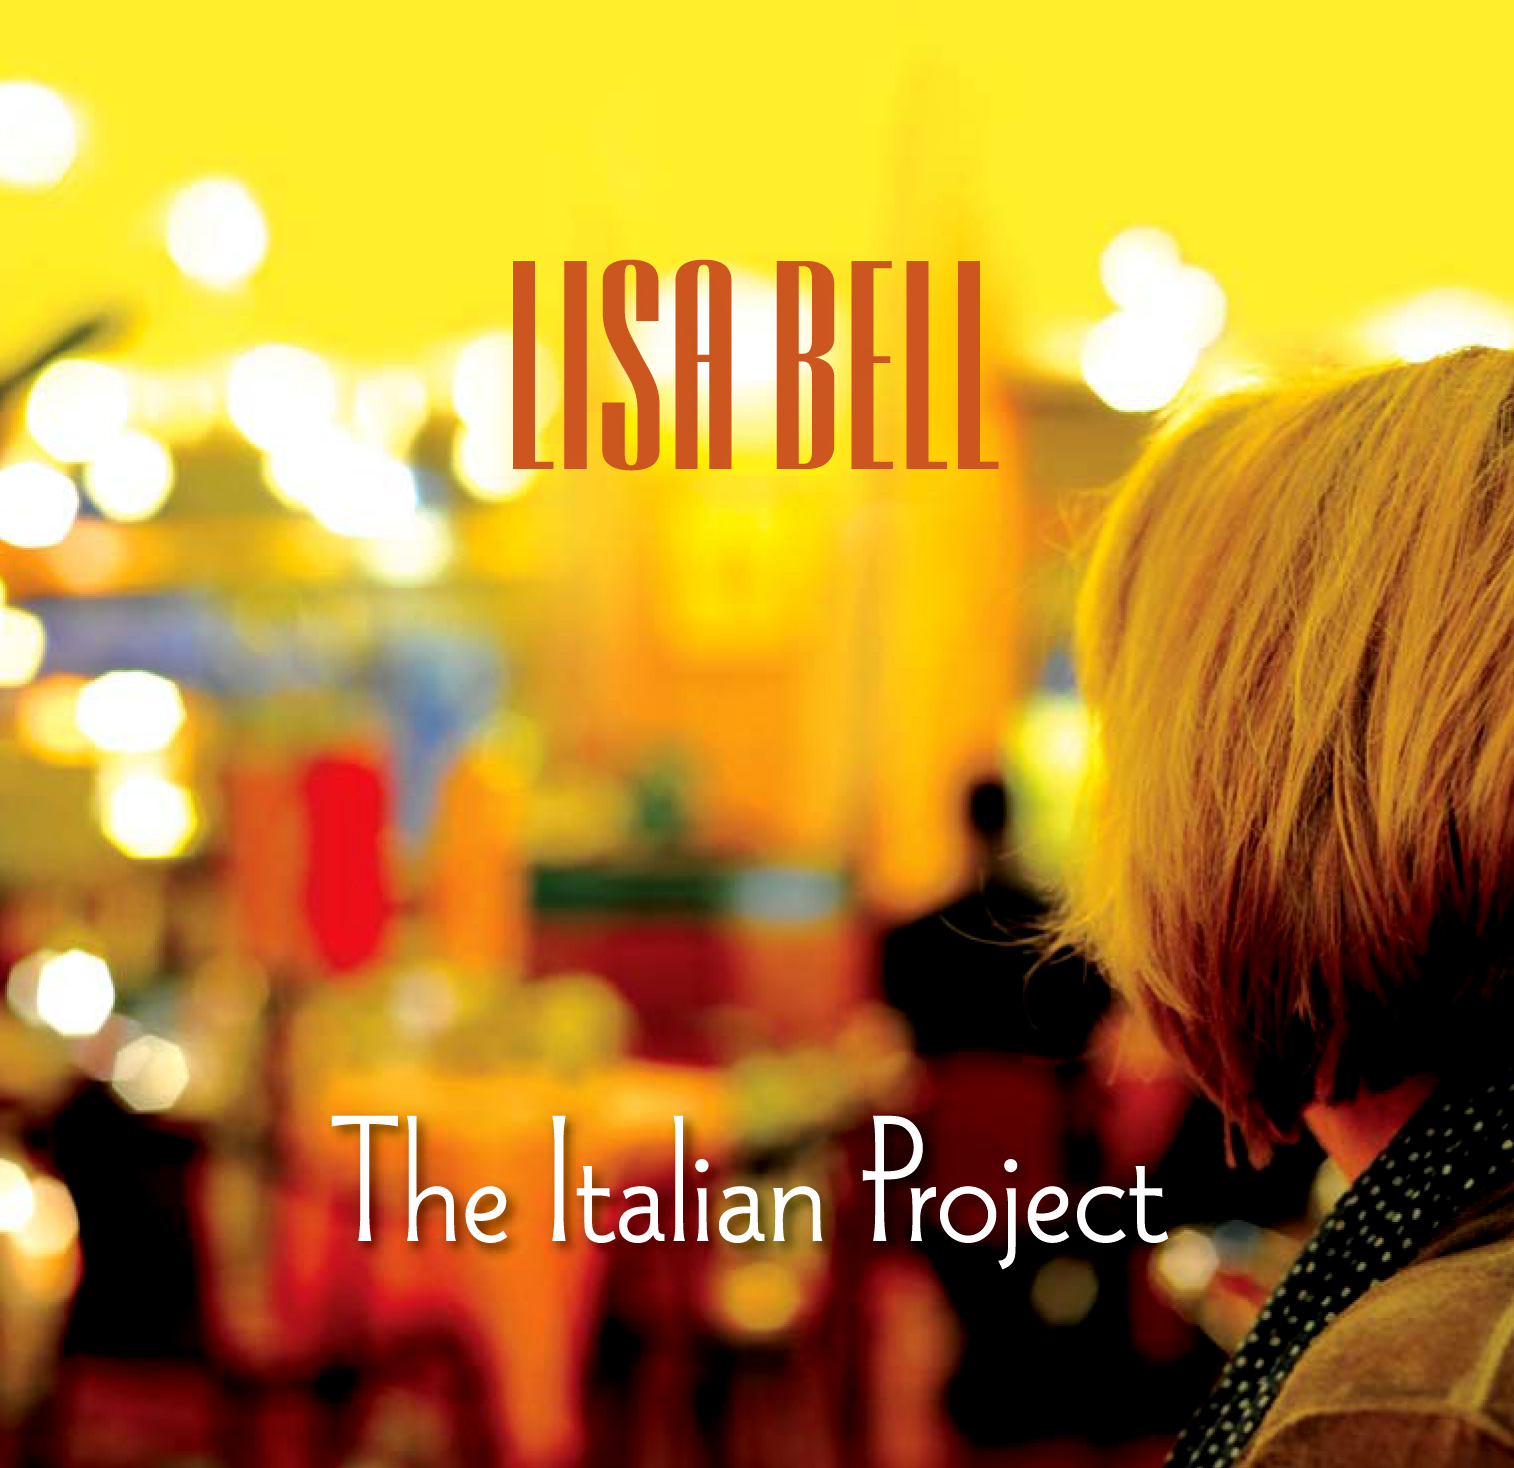 Lisa bell-the italian project